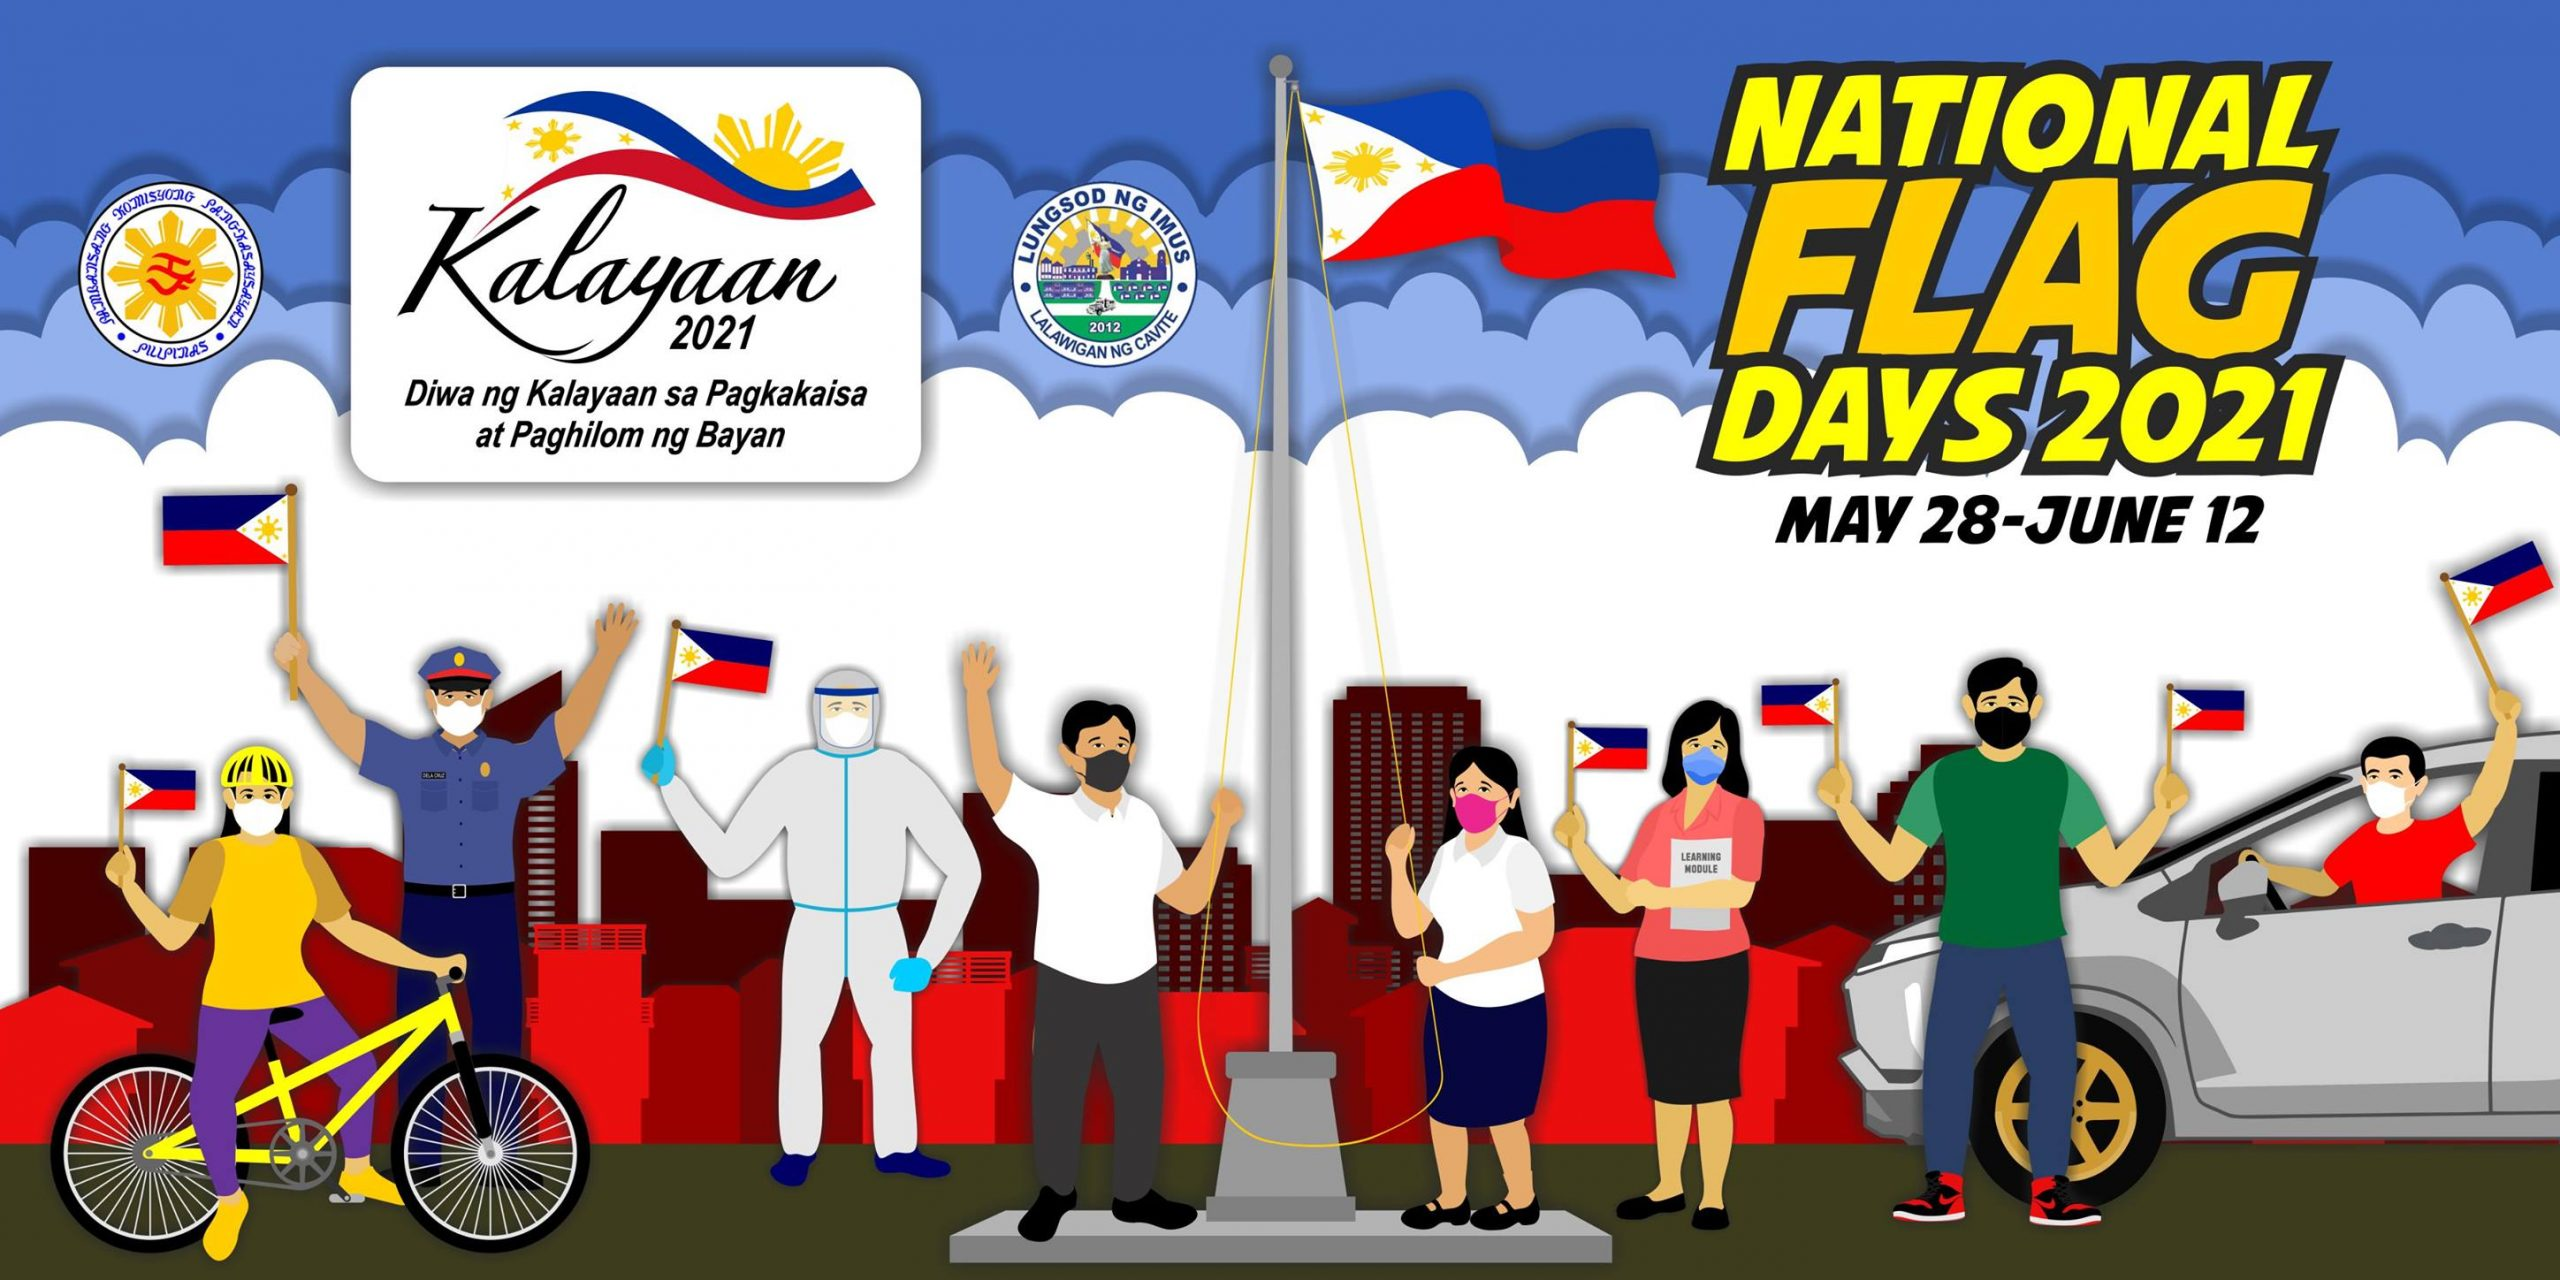 Let us celebrate National Flag Day together starting may 28 to June 12, 2021